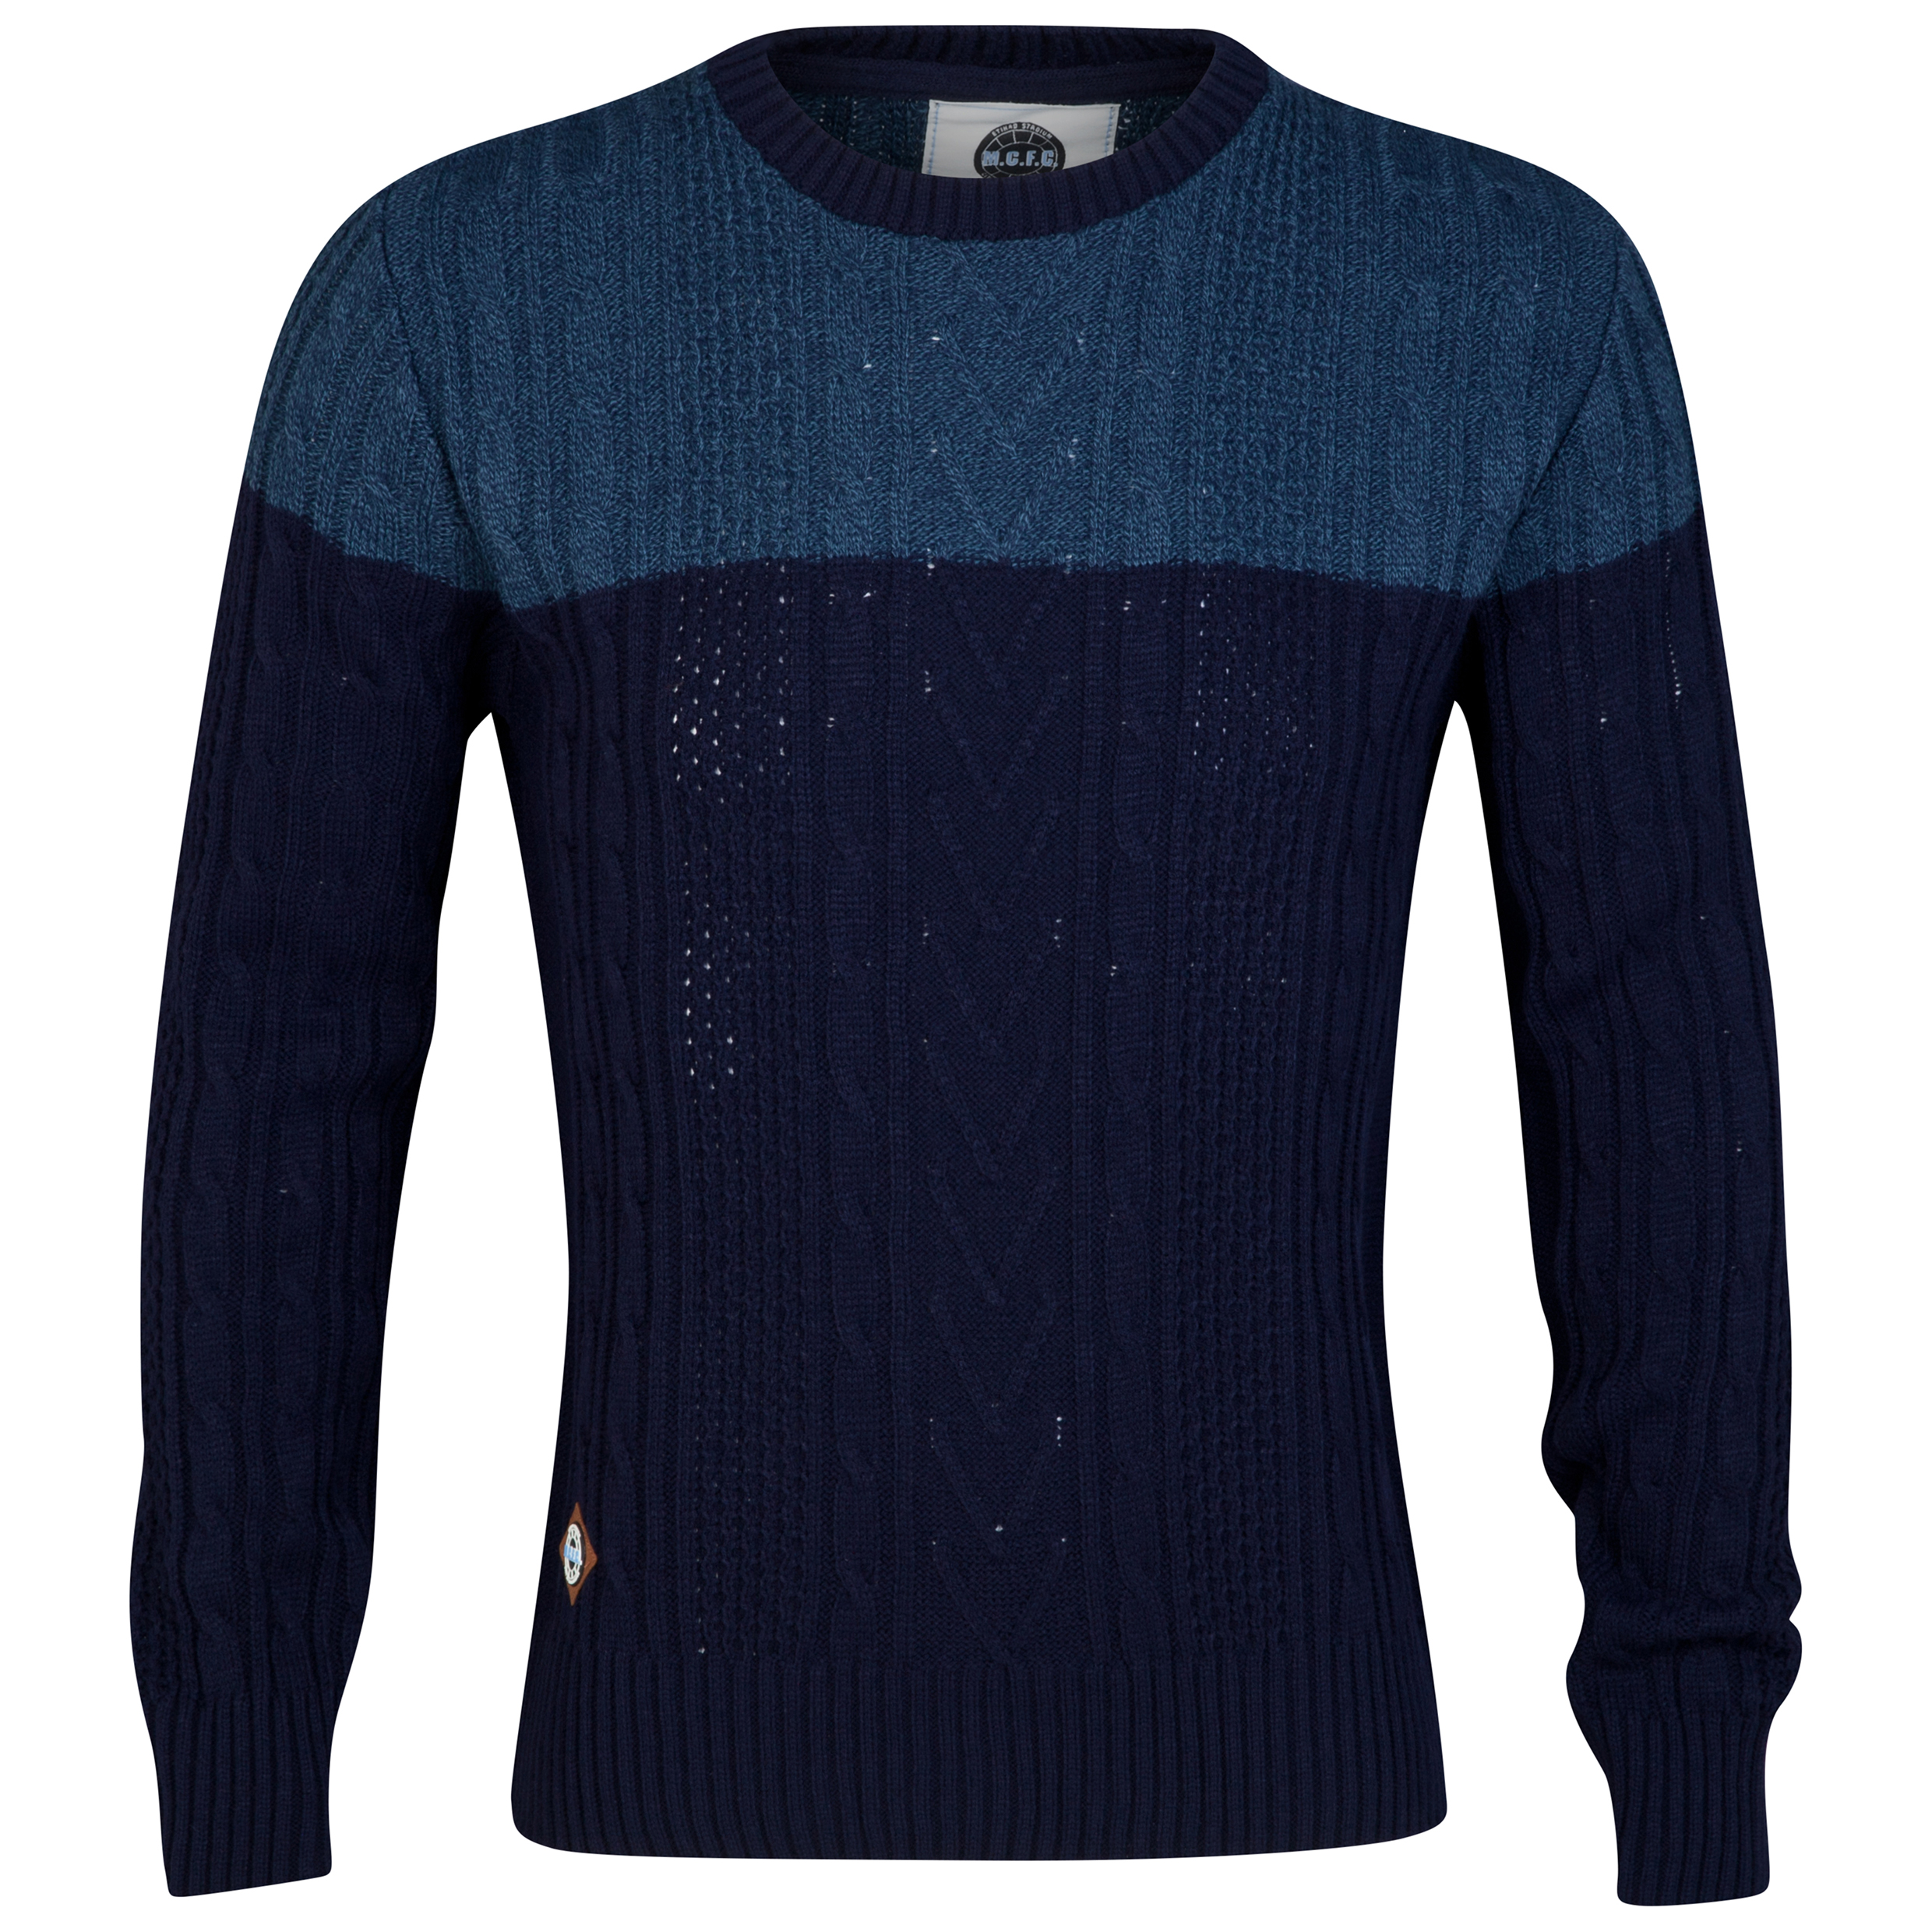 Manchester City Jumper - Navy/Grey - Mens